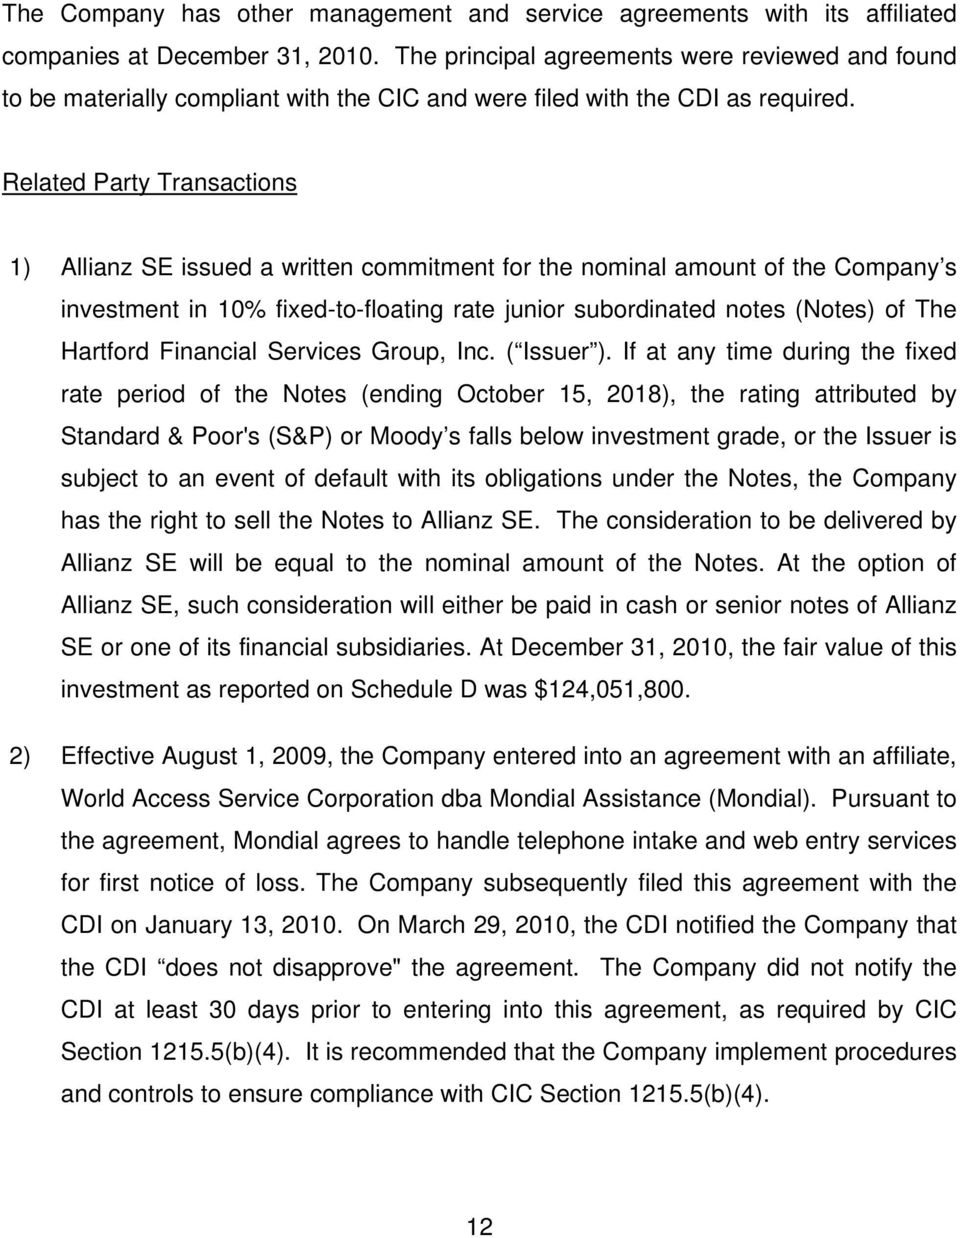 Related Party Transactions 1) Allianz SE issued a written commitment for the nominal amount of the Company s investment in 10% fixed-to-floating rate junior subordinated notes (Notes) of The Hartford